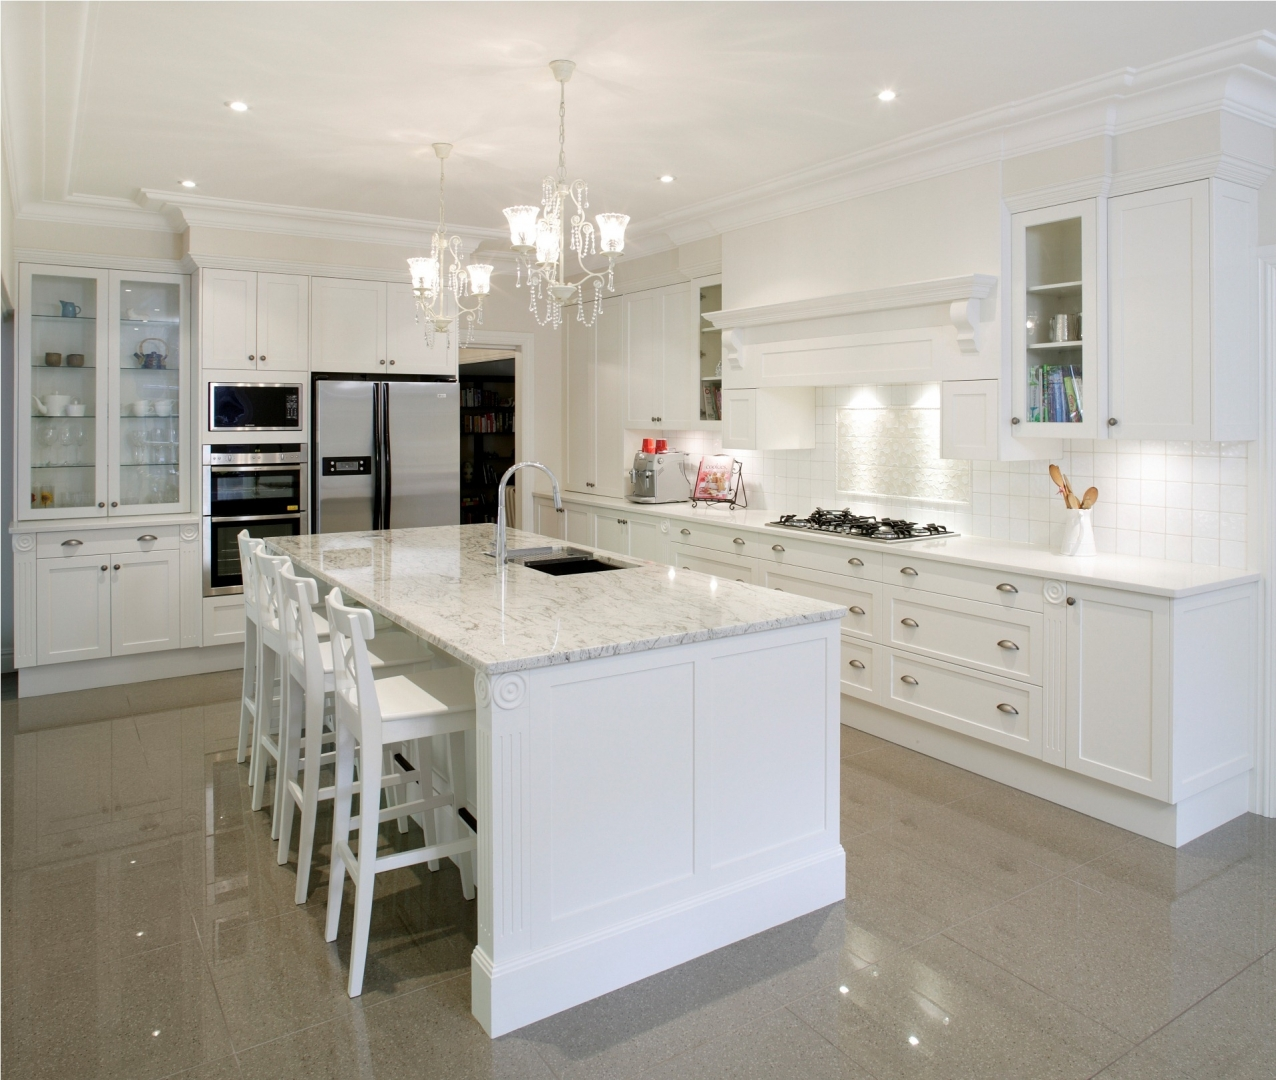 all white kitchen designs. Simple All White Kitchen On All White Kitchen Designs E